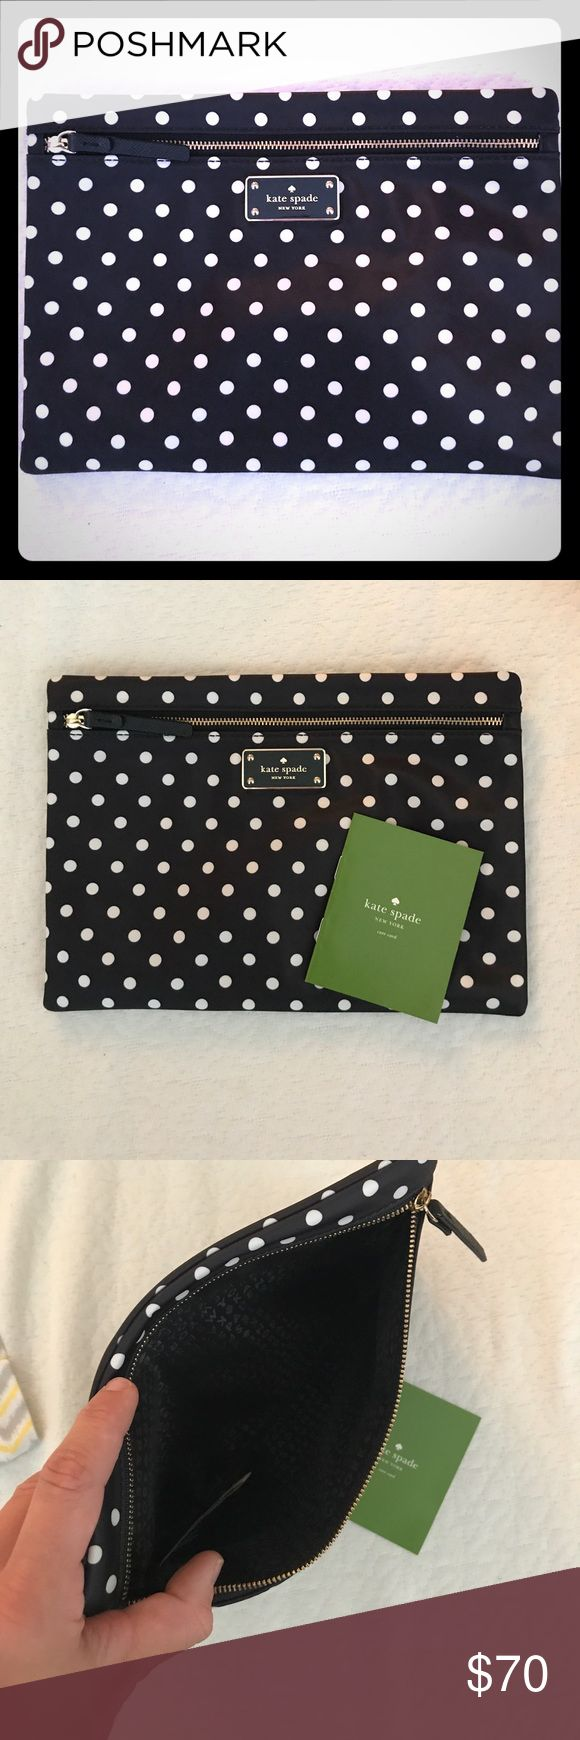 """Kate Spade ♠️ cosmetic bag. Larger Kate Spade cosmetic bag (also have small one listed on page). H: 7"""" w: 10"""". Never used. kate spade Bags Cosmetic Bags & Cases"""